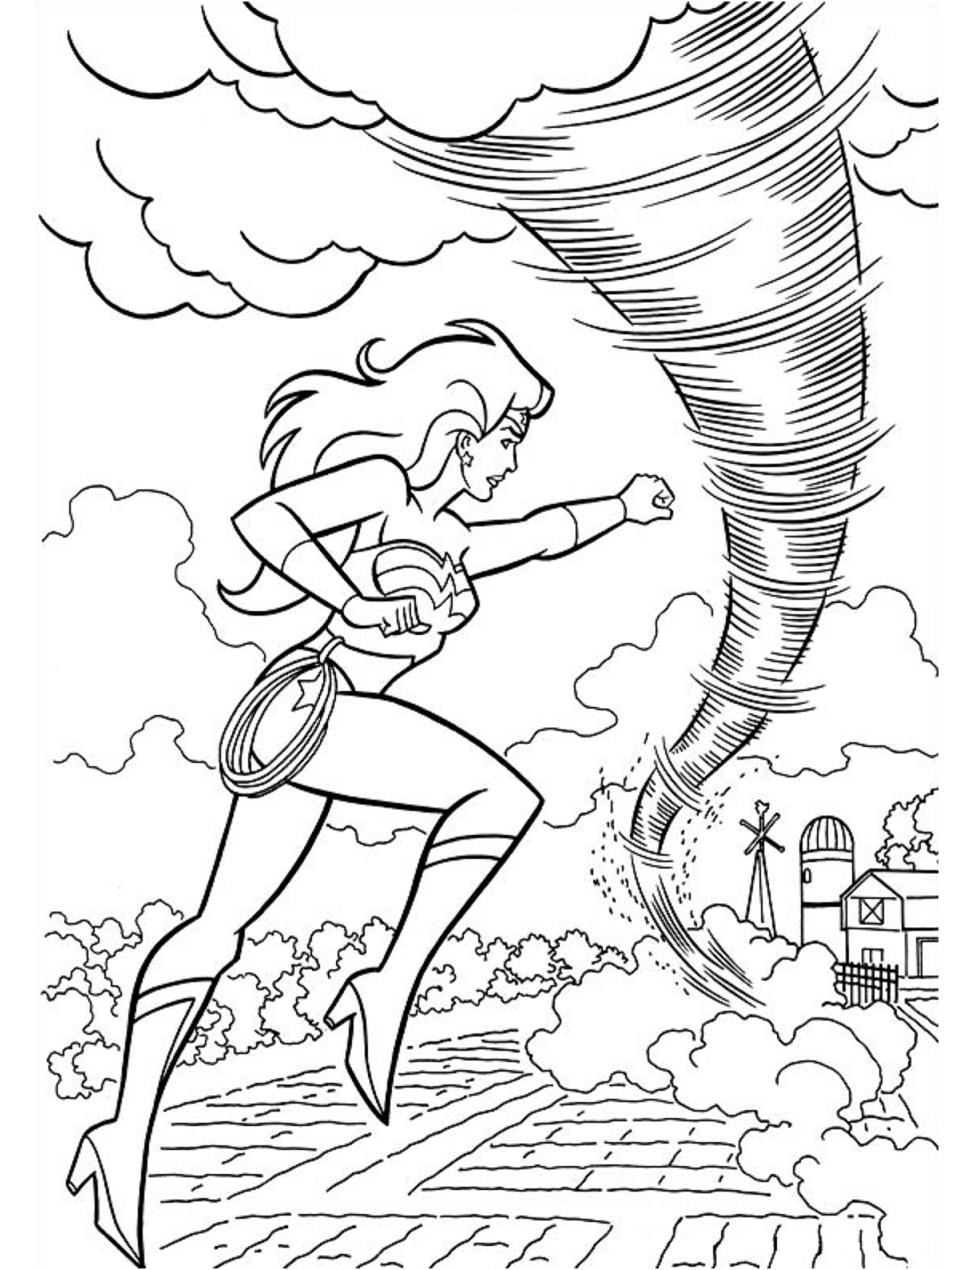 Wonderwoman Fights Tornado Coloring Pages